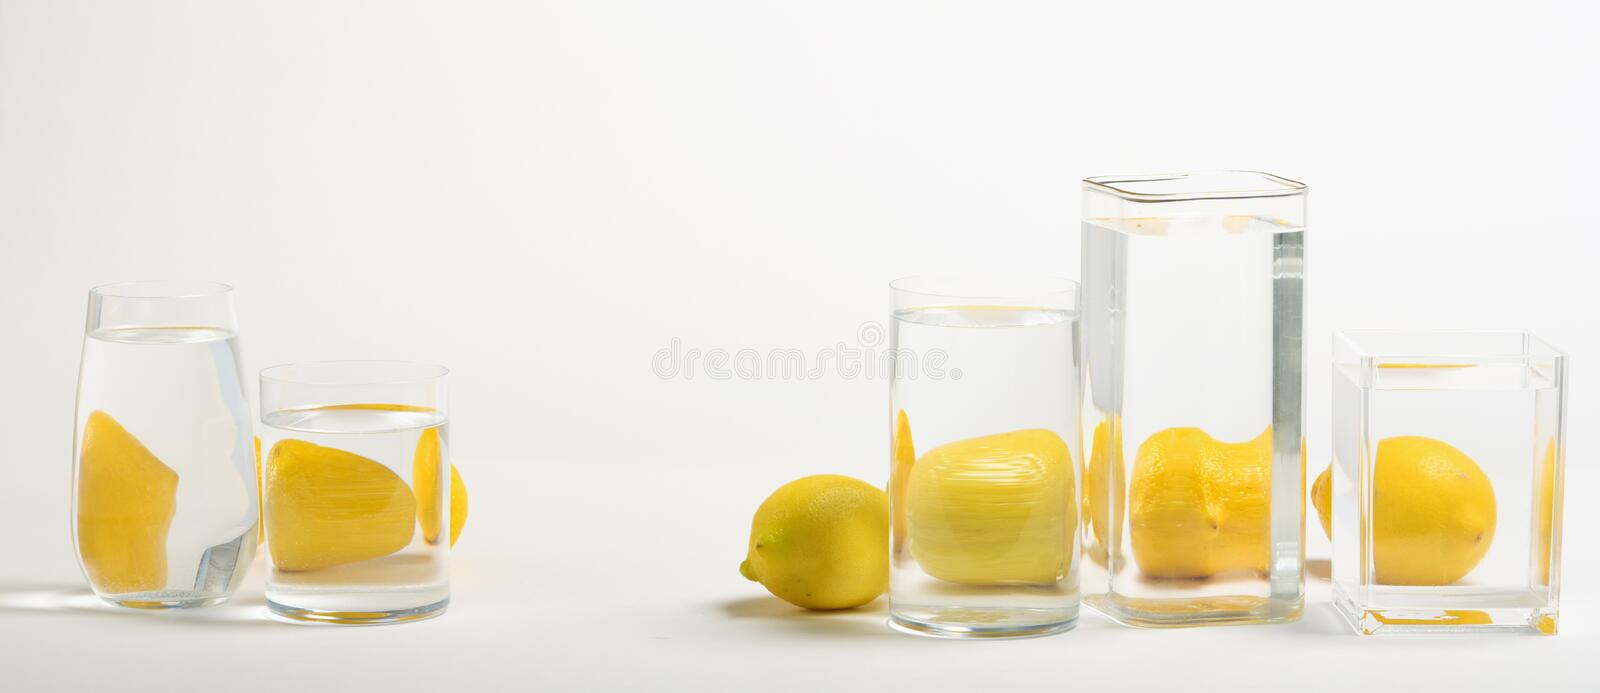 Foods distorted through liquid and glass on white background. Perspective, fractured and skewed images of common foods as seen through vessels filled with water royalty free stock photos